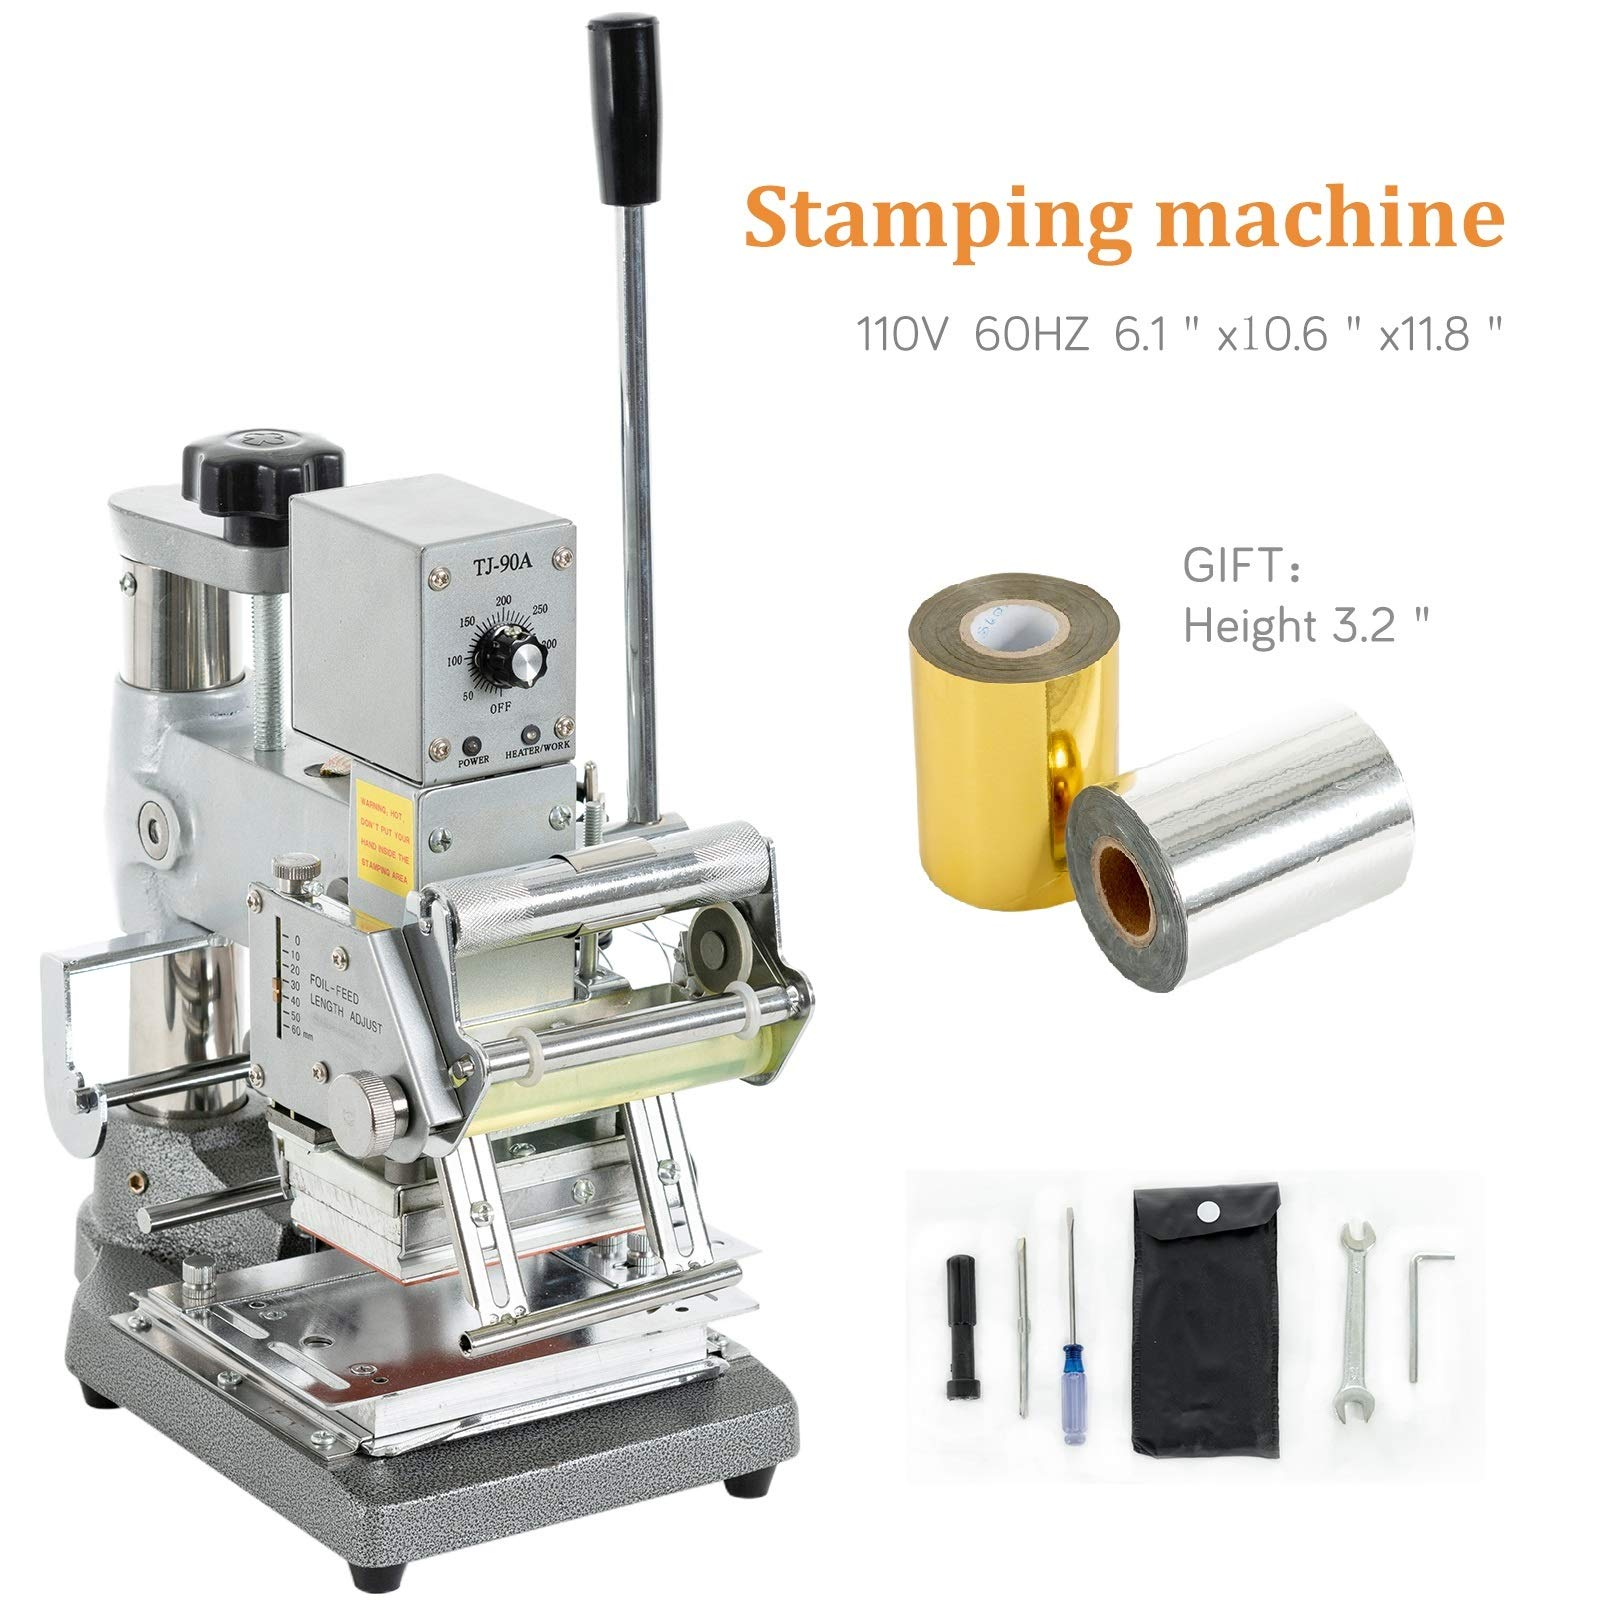 SUNCOO Hot Foil Stamping Machine 2.4 Inches x 3.5 Inches Bronzing Machine Embossing Machine Printing Logo for PVC Card, Credit Card with Foil Paper